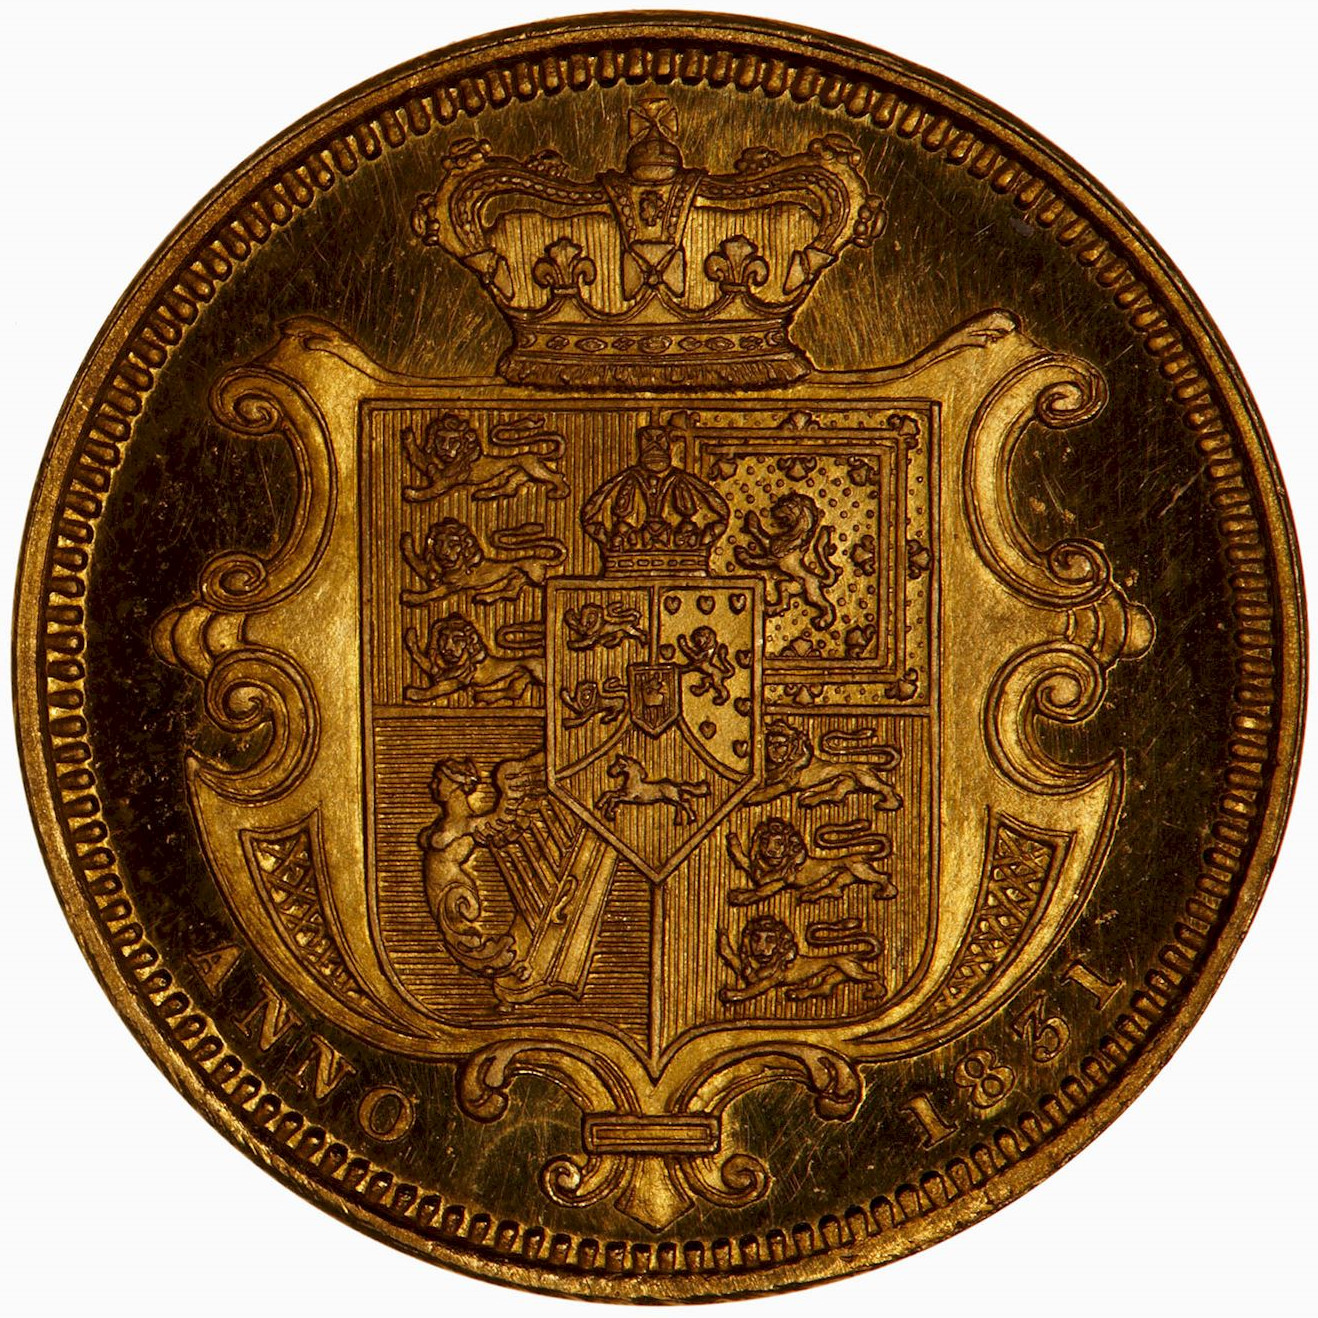 Half Sovereign 1831 (Proof only): Photo Proof Coin - Half-Sovereign, William IV, Great Britain, 1831